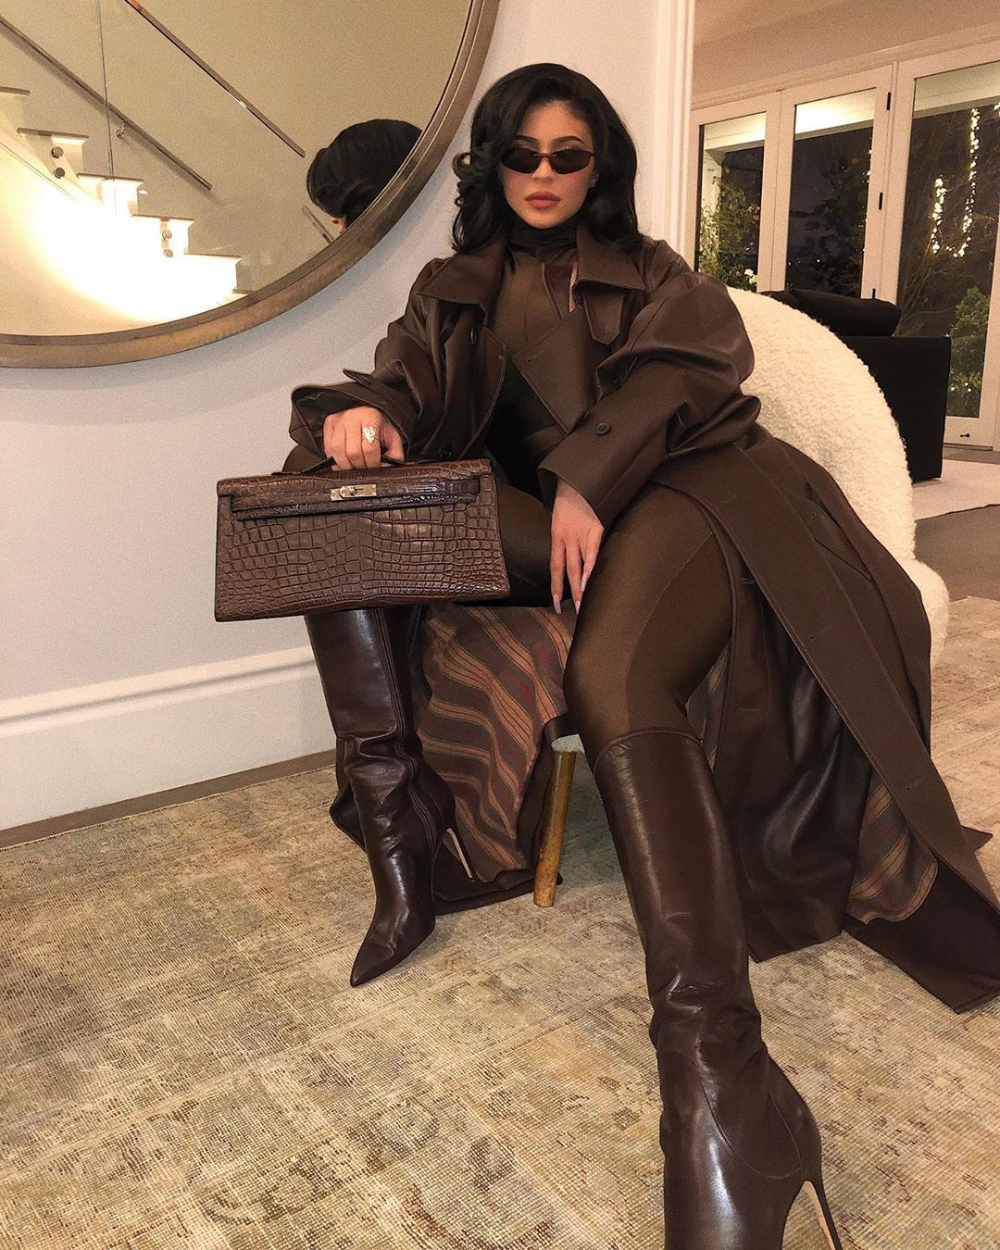 Kylie Jenner Dark Brown Leather Boots Street Style Autumn Winter 2019 On Sassy Daily Kylie Jenner Outfits Kylie Jenner Street Style Kylie Jenner [ 1250 x 1000 Pixel ]